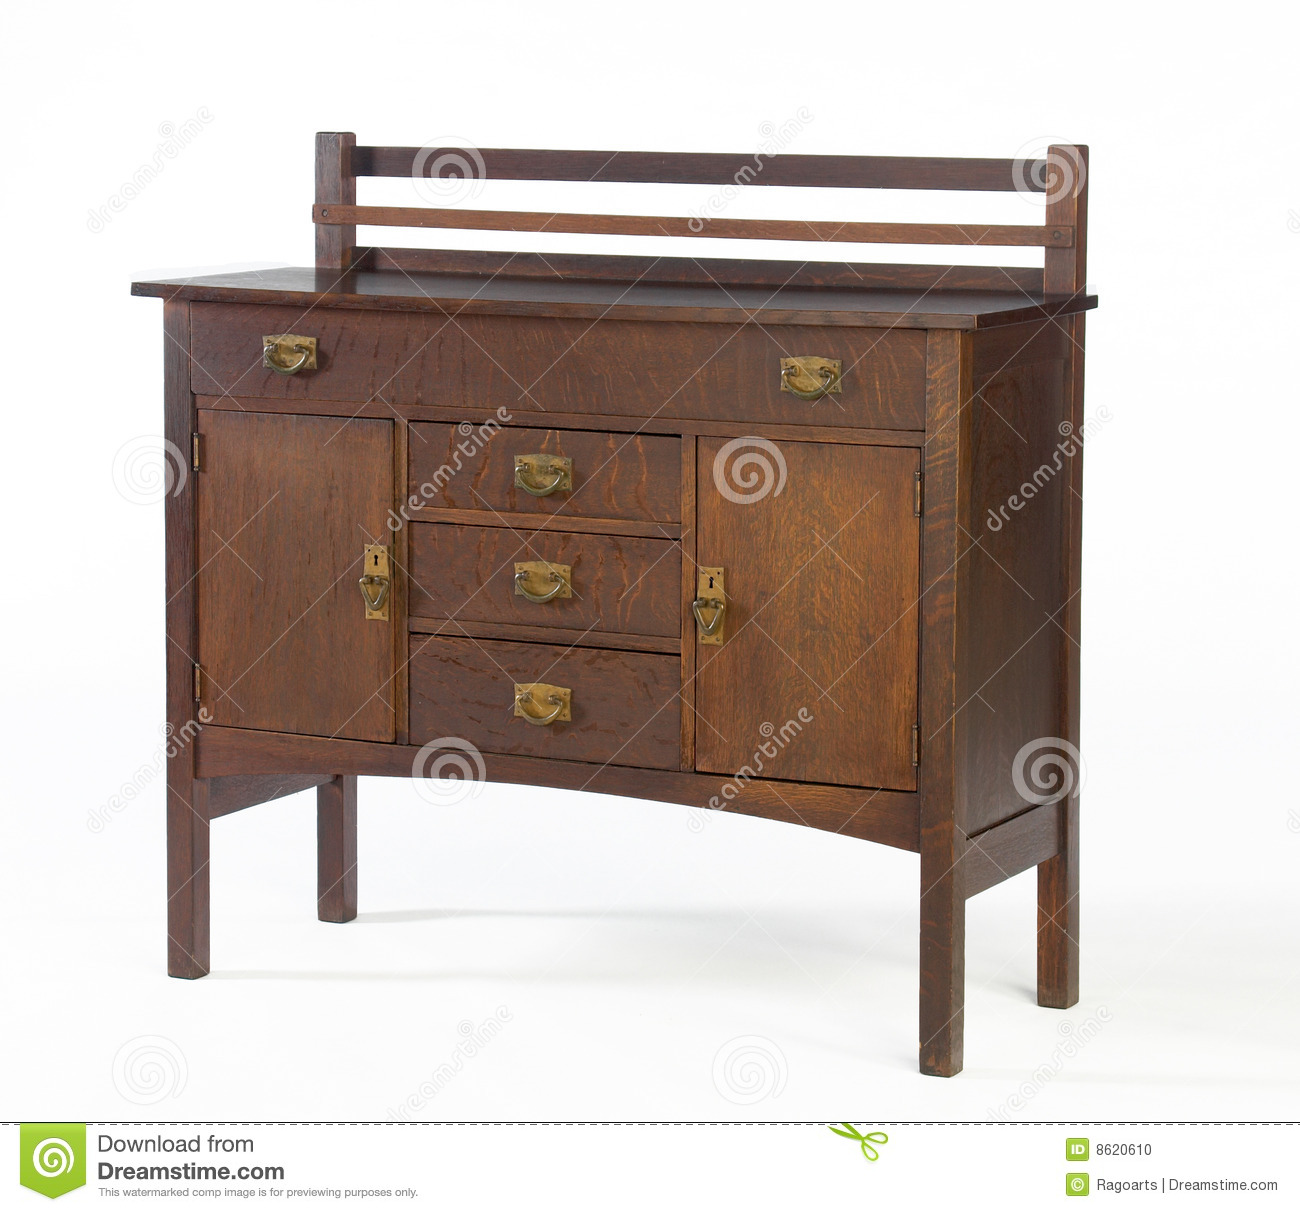 Arts and crafts stickley oak sideboard editorial image for Arts and crafts furniture plans